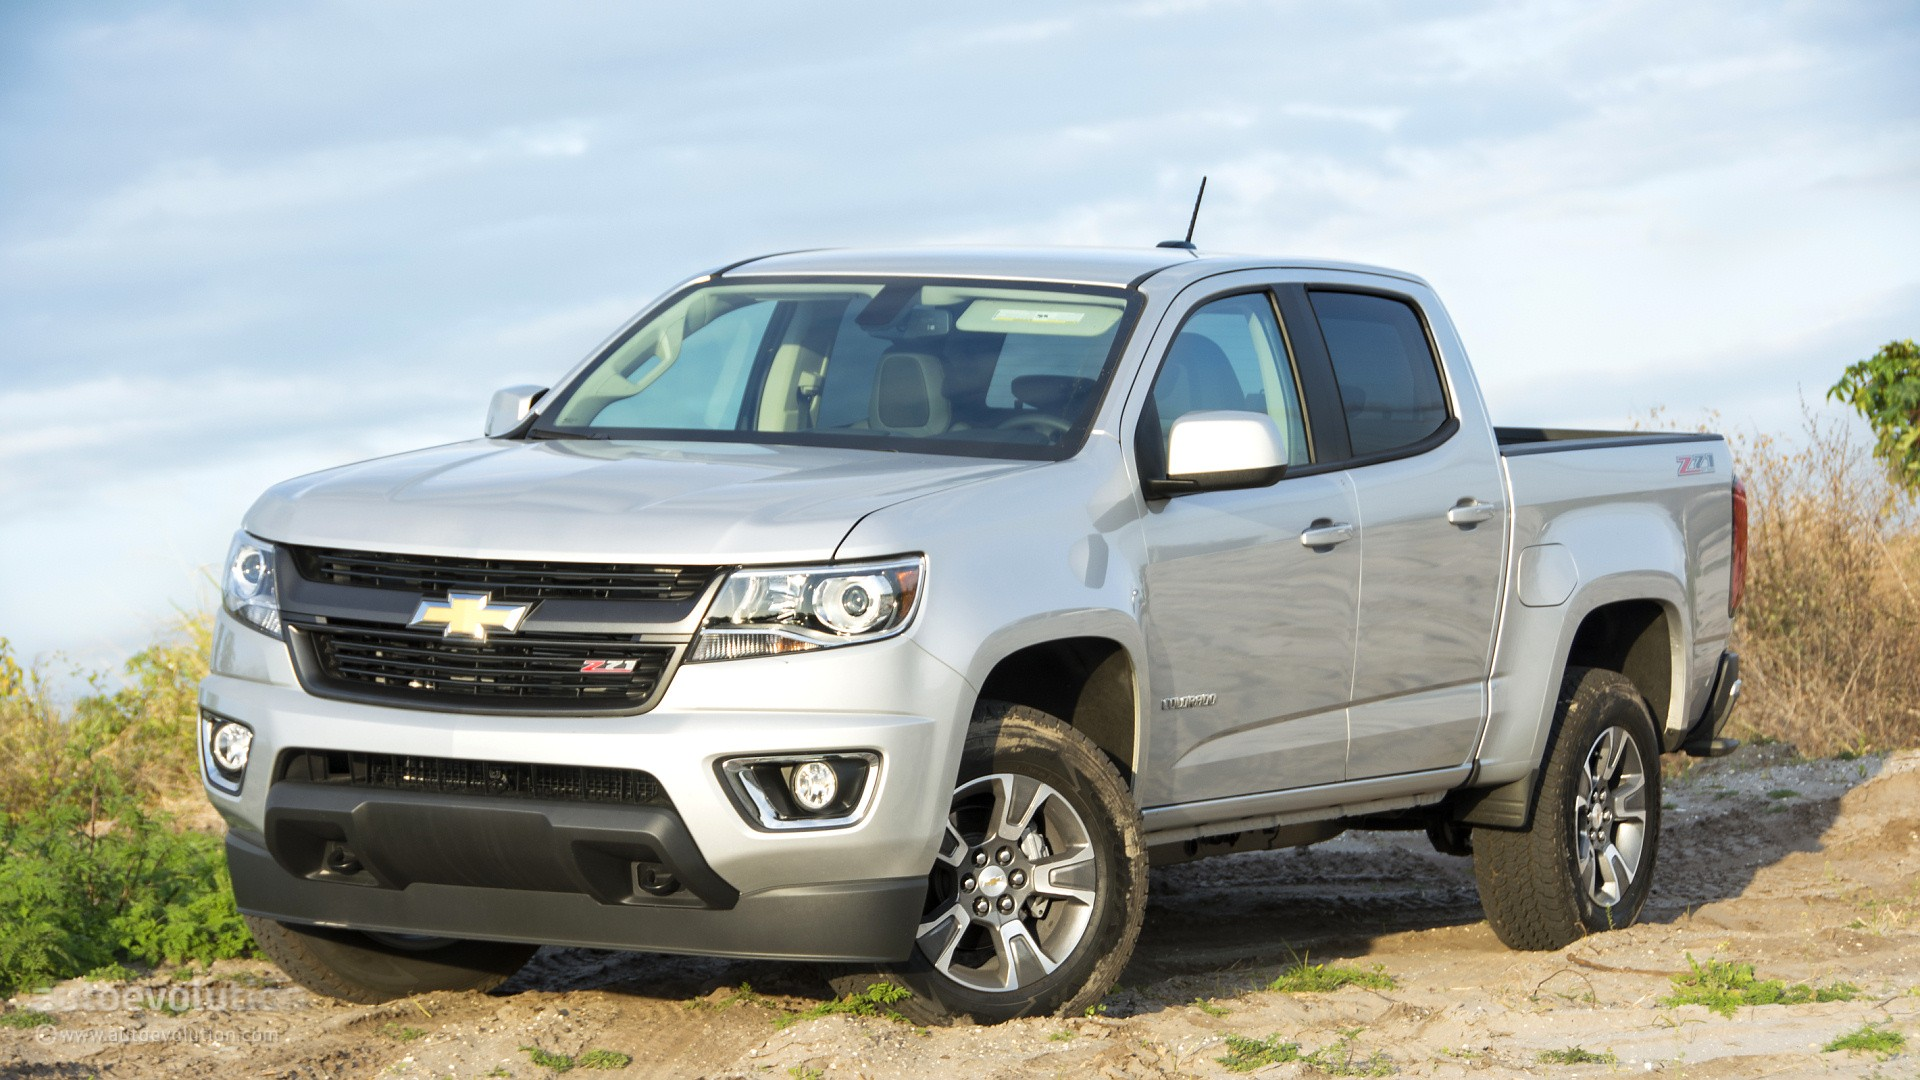 2015 Chevrolet Colorado Review - autoevolution